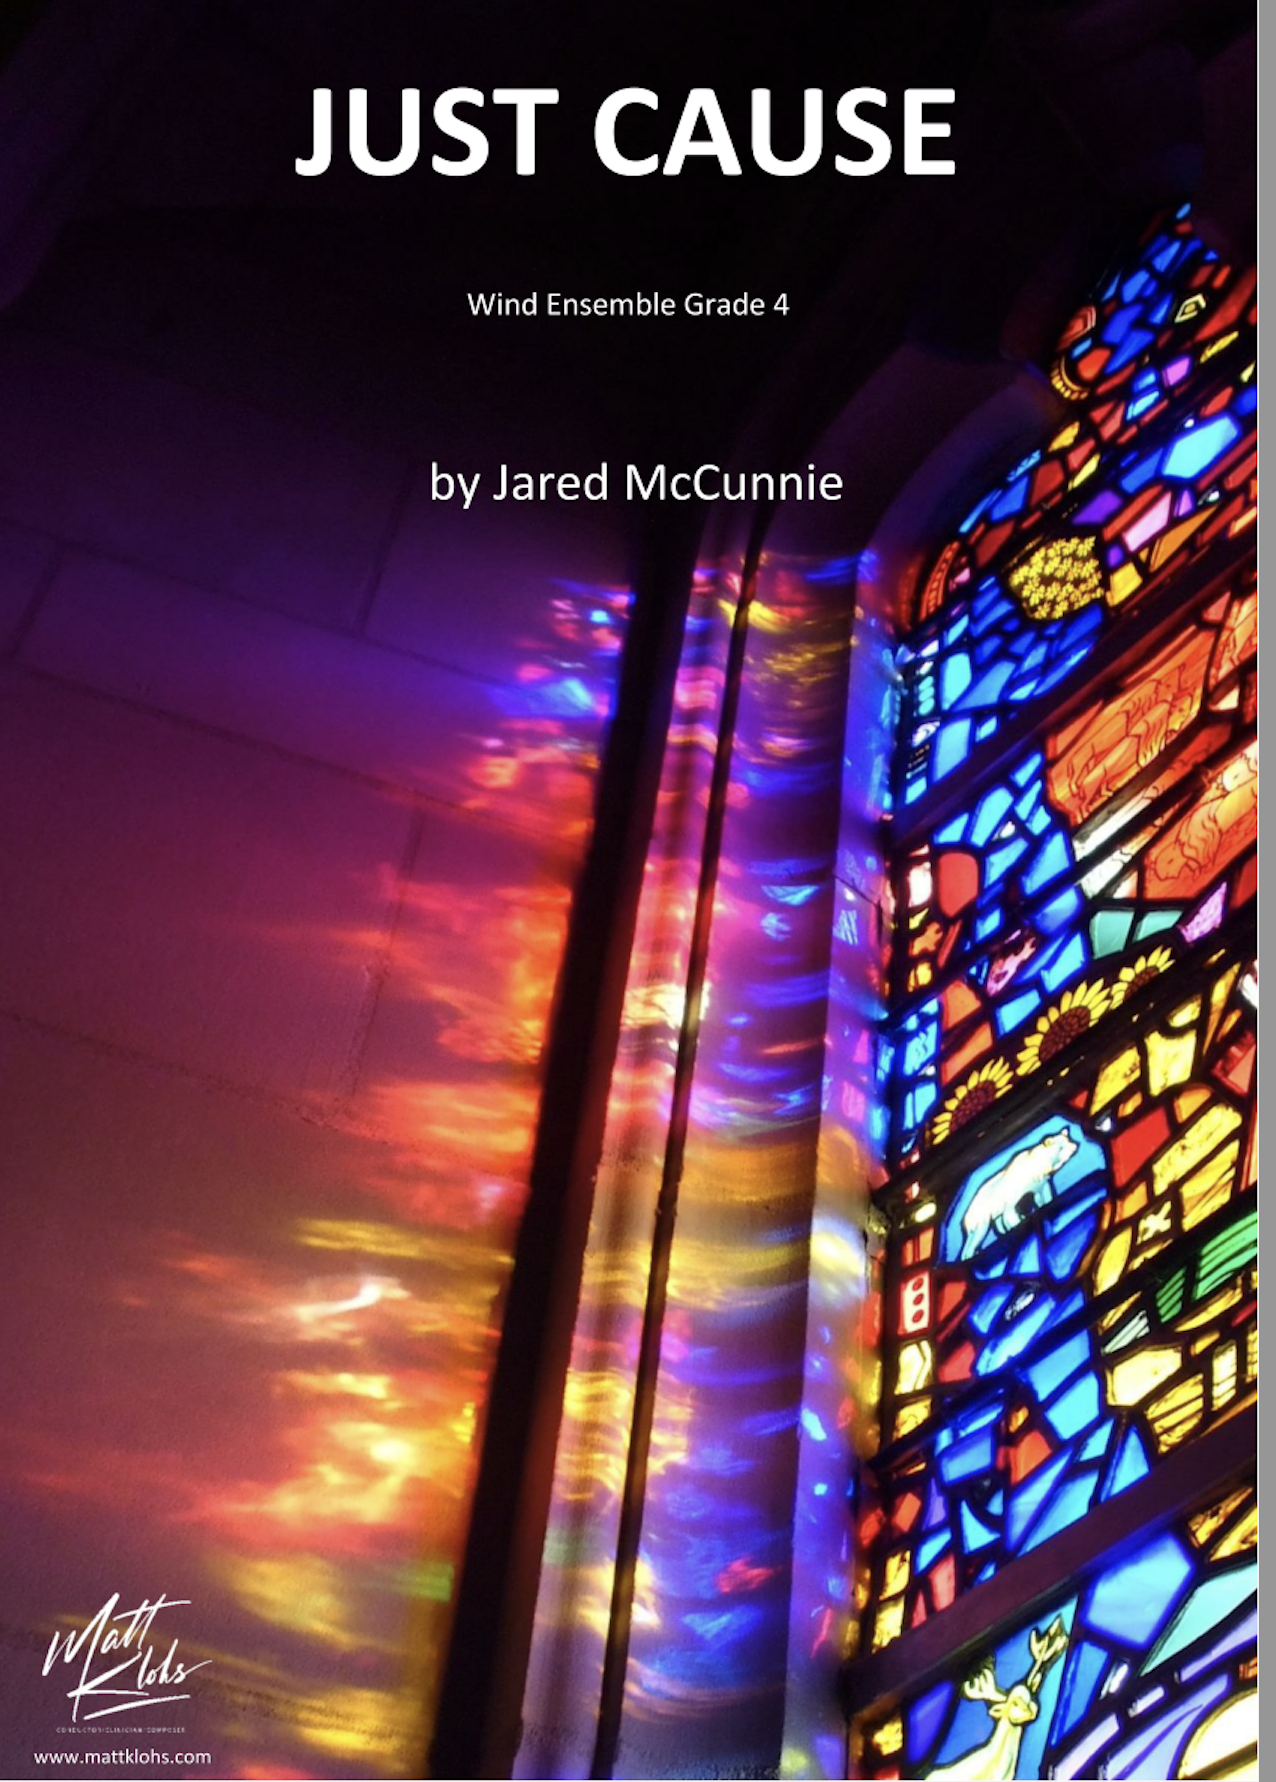 Just Cause by Jared McCunnie